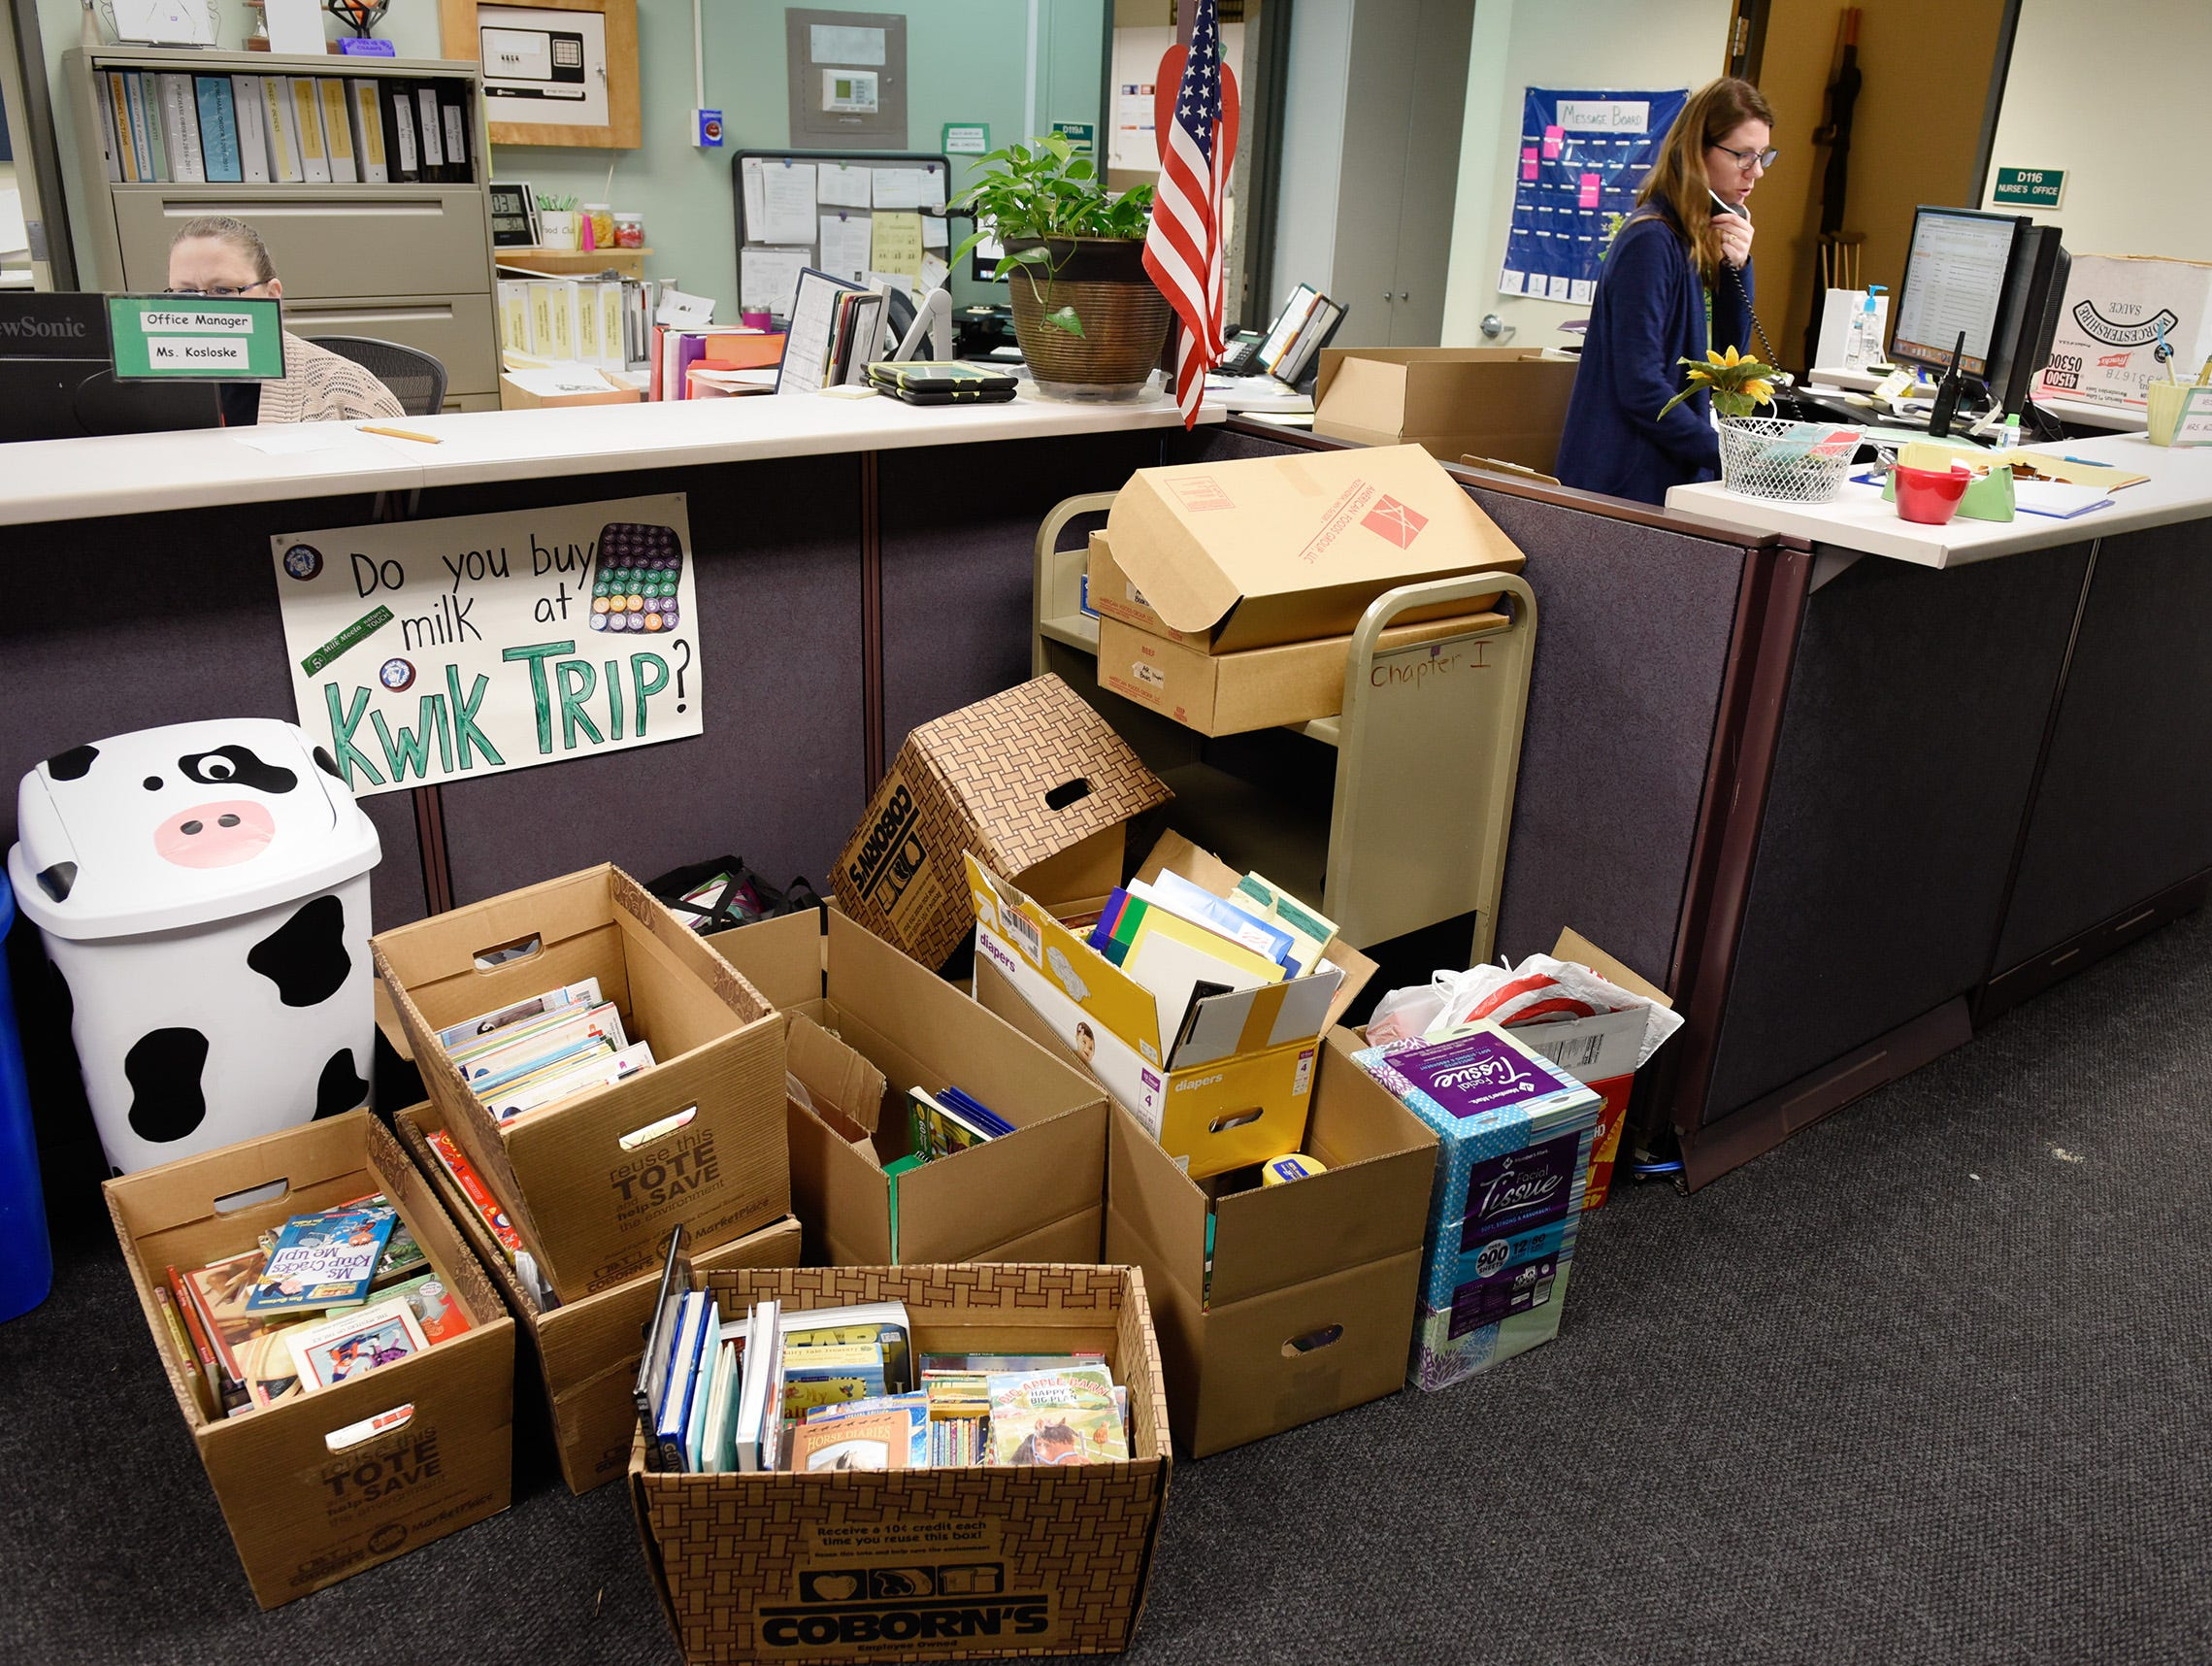 Donations were coming in all day Tuesday, Jan. 15, after a fire damaged four classrooms Sunday at Pleasantview Elementary School in Sauk Rapids.